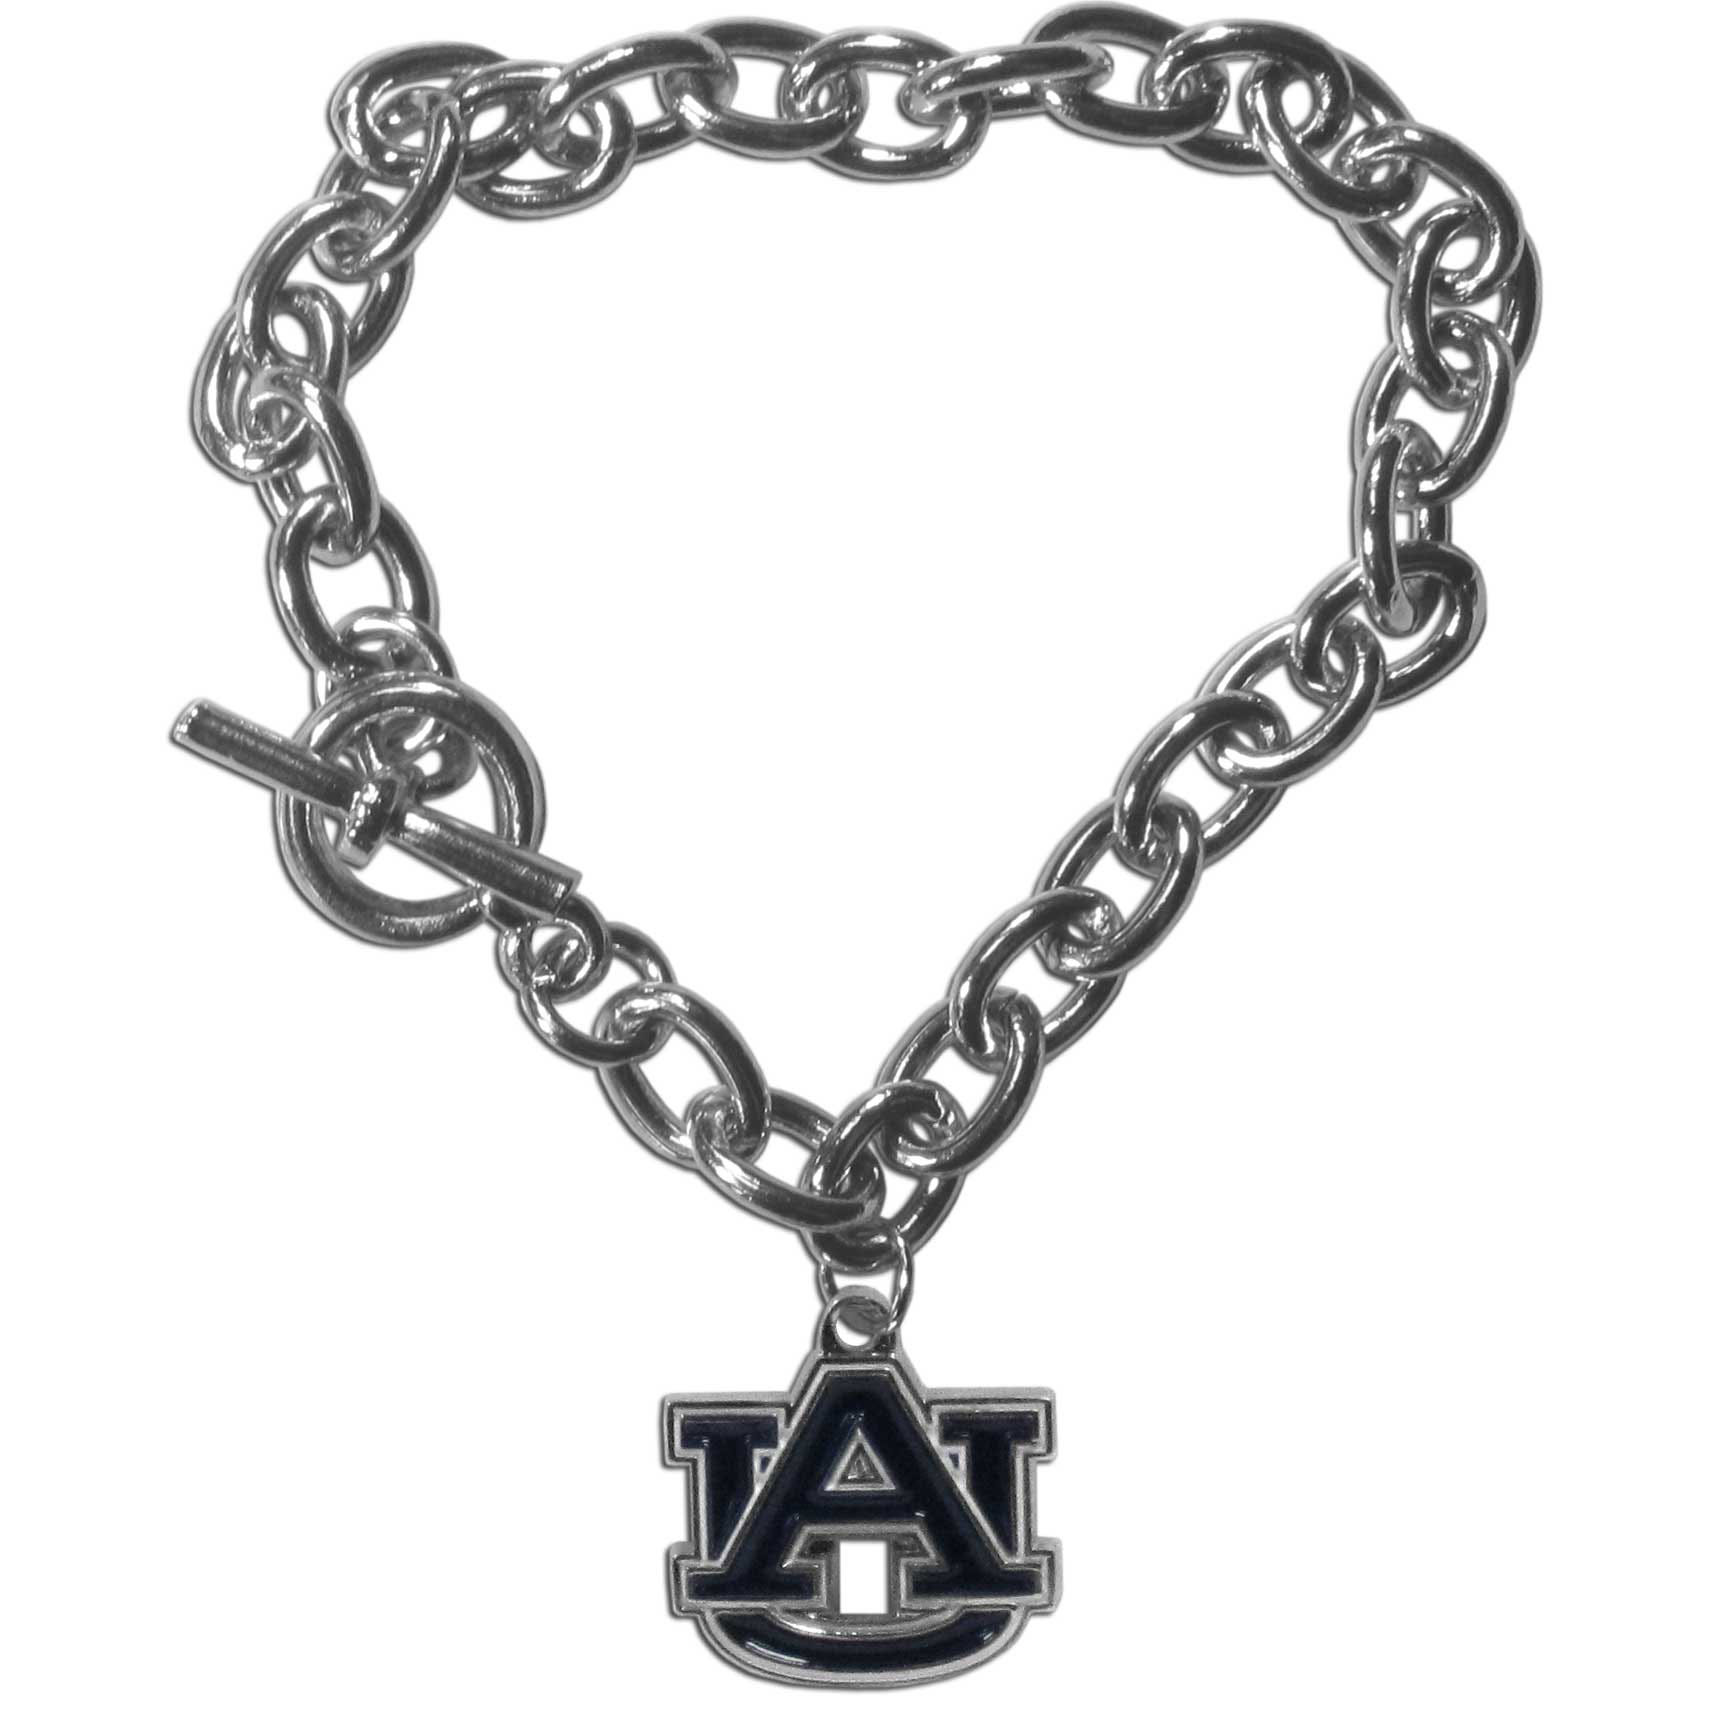 Auburn Tigers Charm Chain Bracelet - Our classic single charm bracelet is a great way to show off your team pride! The 7.5 inch large link chain features a high polish Auburn Tigers charm and features a toggle clasp which makes it super easy to take on and off.